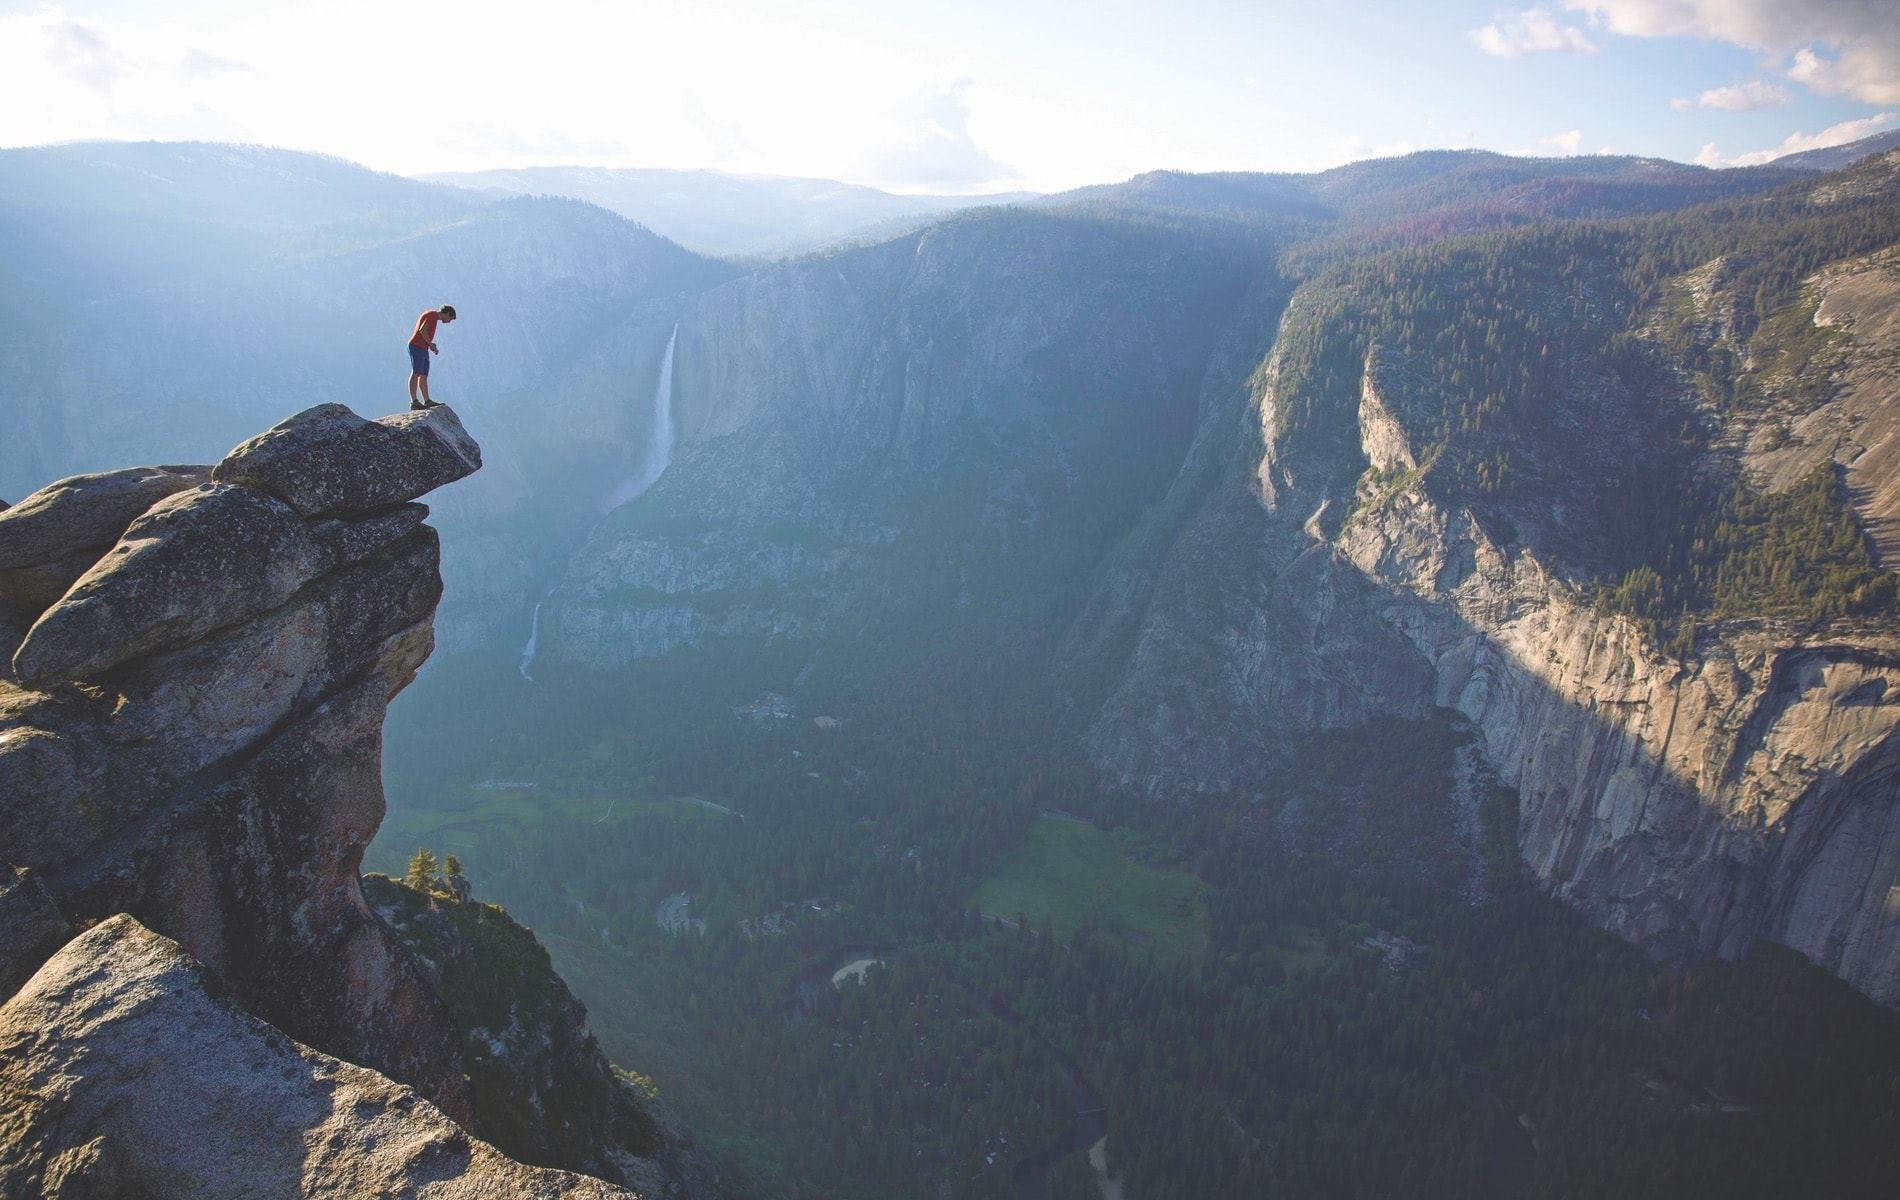 Alex Honnold, professional adventure rock climber, is the subject of Free Solo, a 2018 National Geographic documentary directed by Elizabeth Chai Vasarhelyi and Jimmy Chin. | Photo courtesy of National Geographic Documentary Films